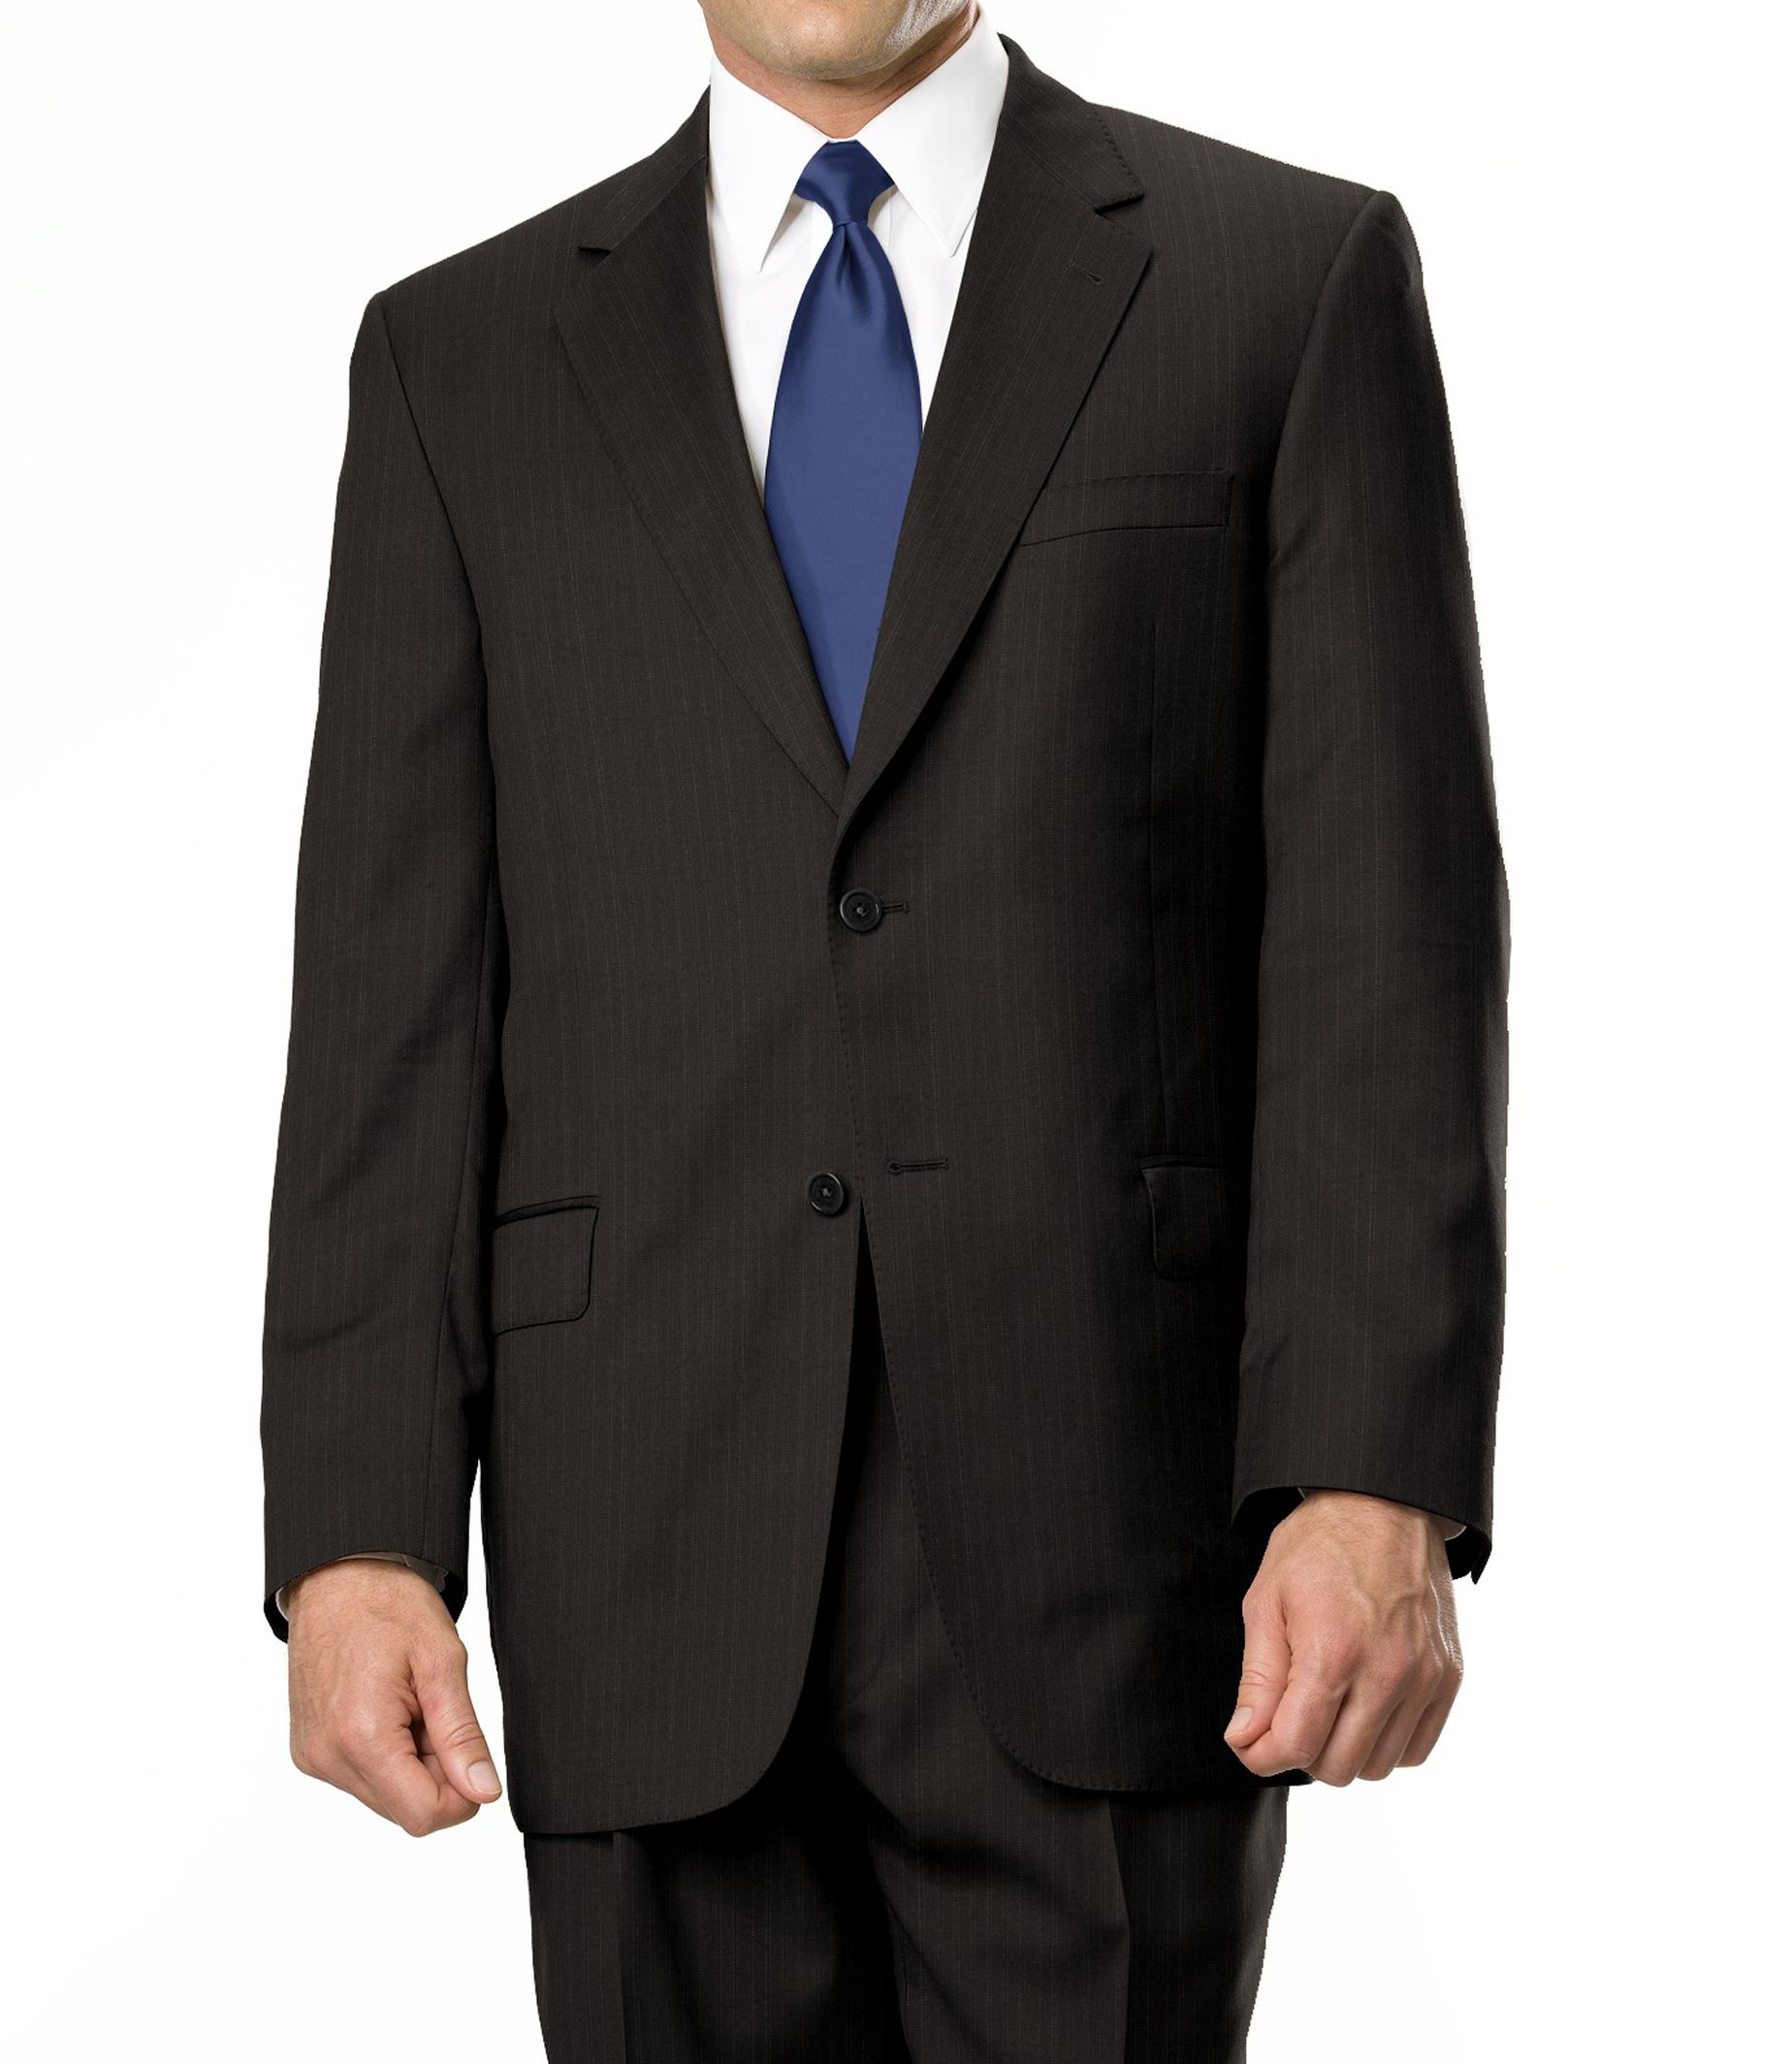 Signature Gold 2-Button Wool Suit- Sizes 44 X-Long-52- Charcoal Grey, Navy Stripe